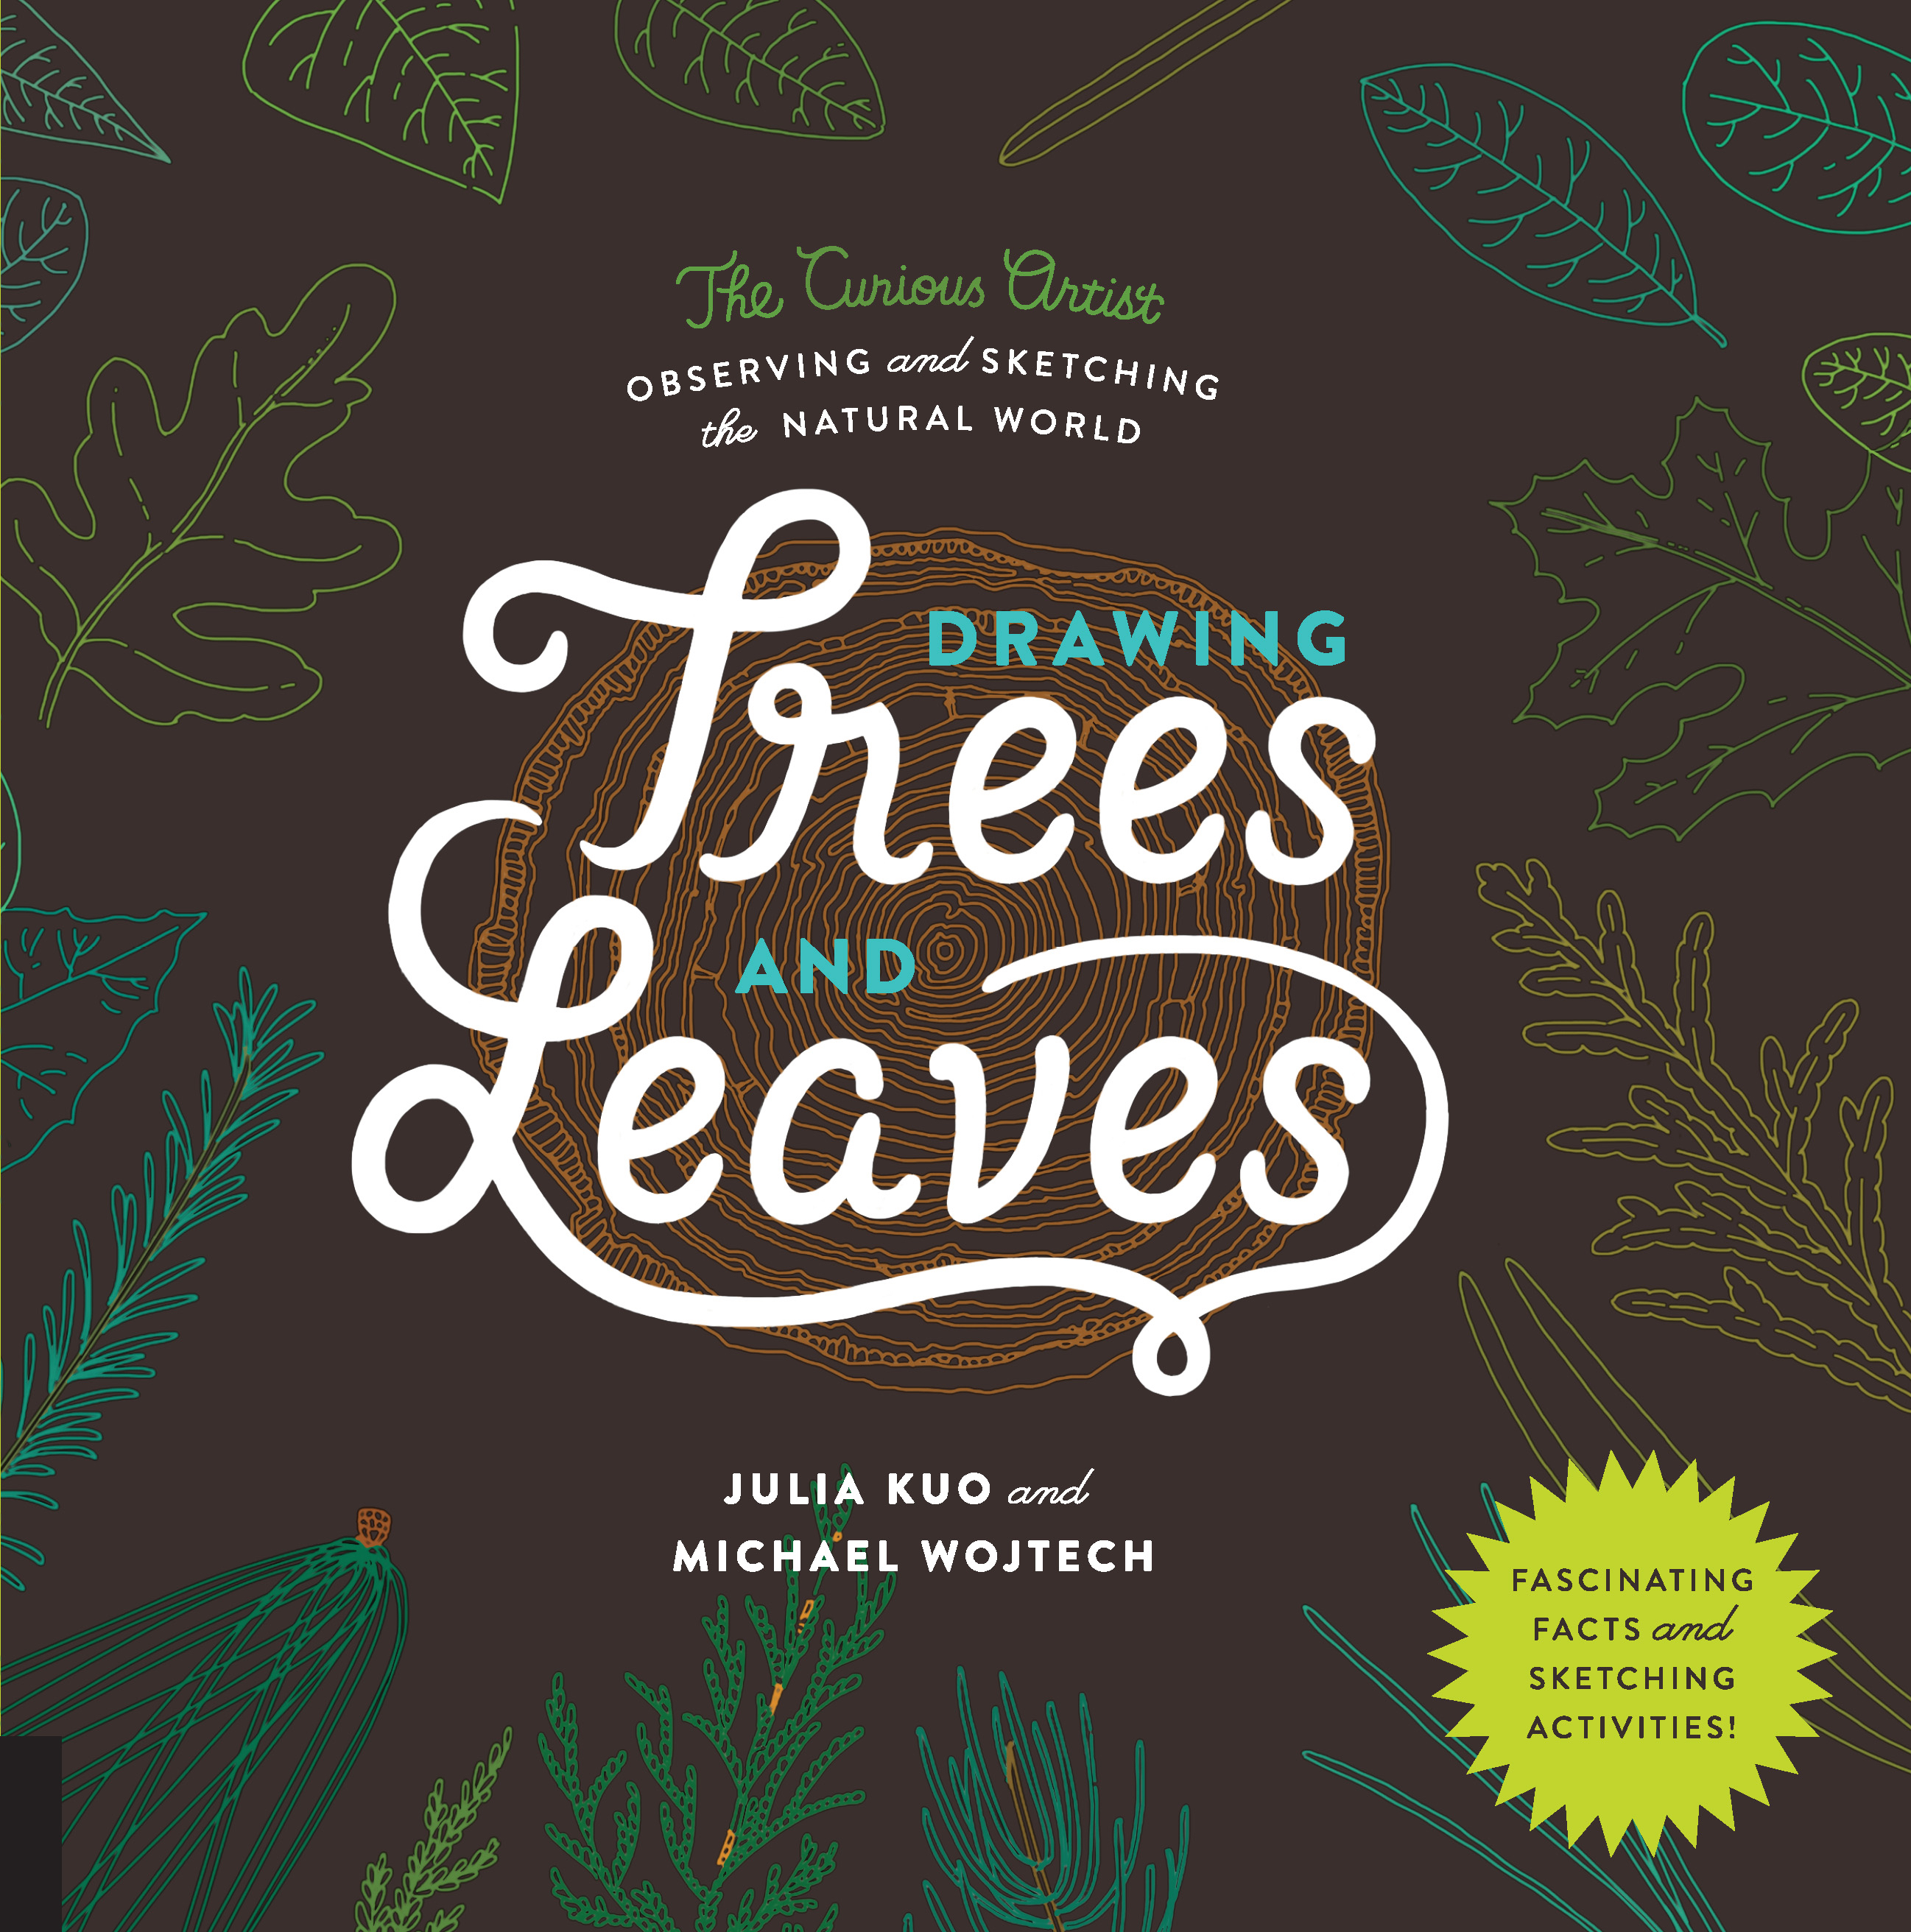 Drawing Trees & Leaves, by Julia Kuo & Michael Wojtech